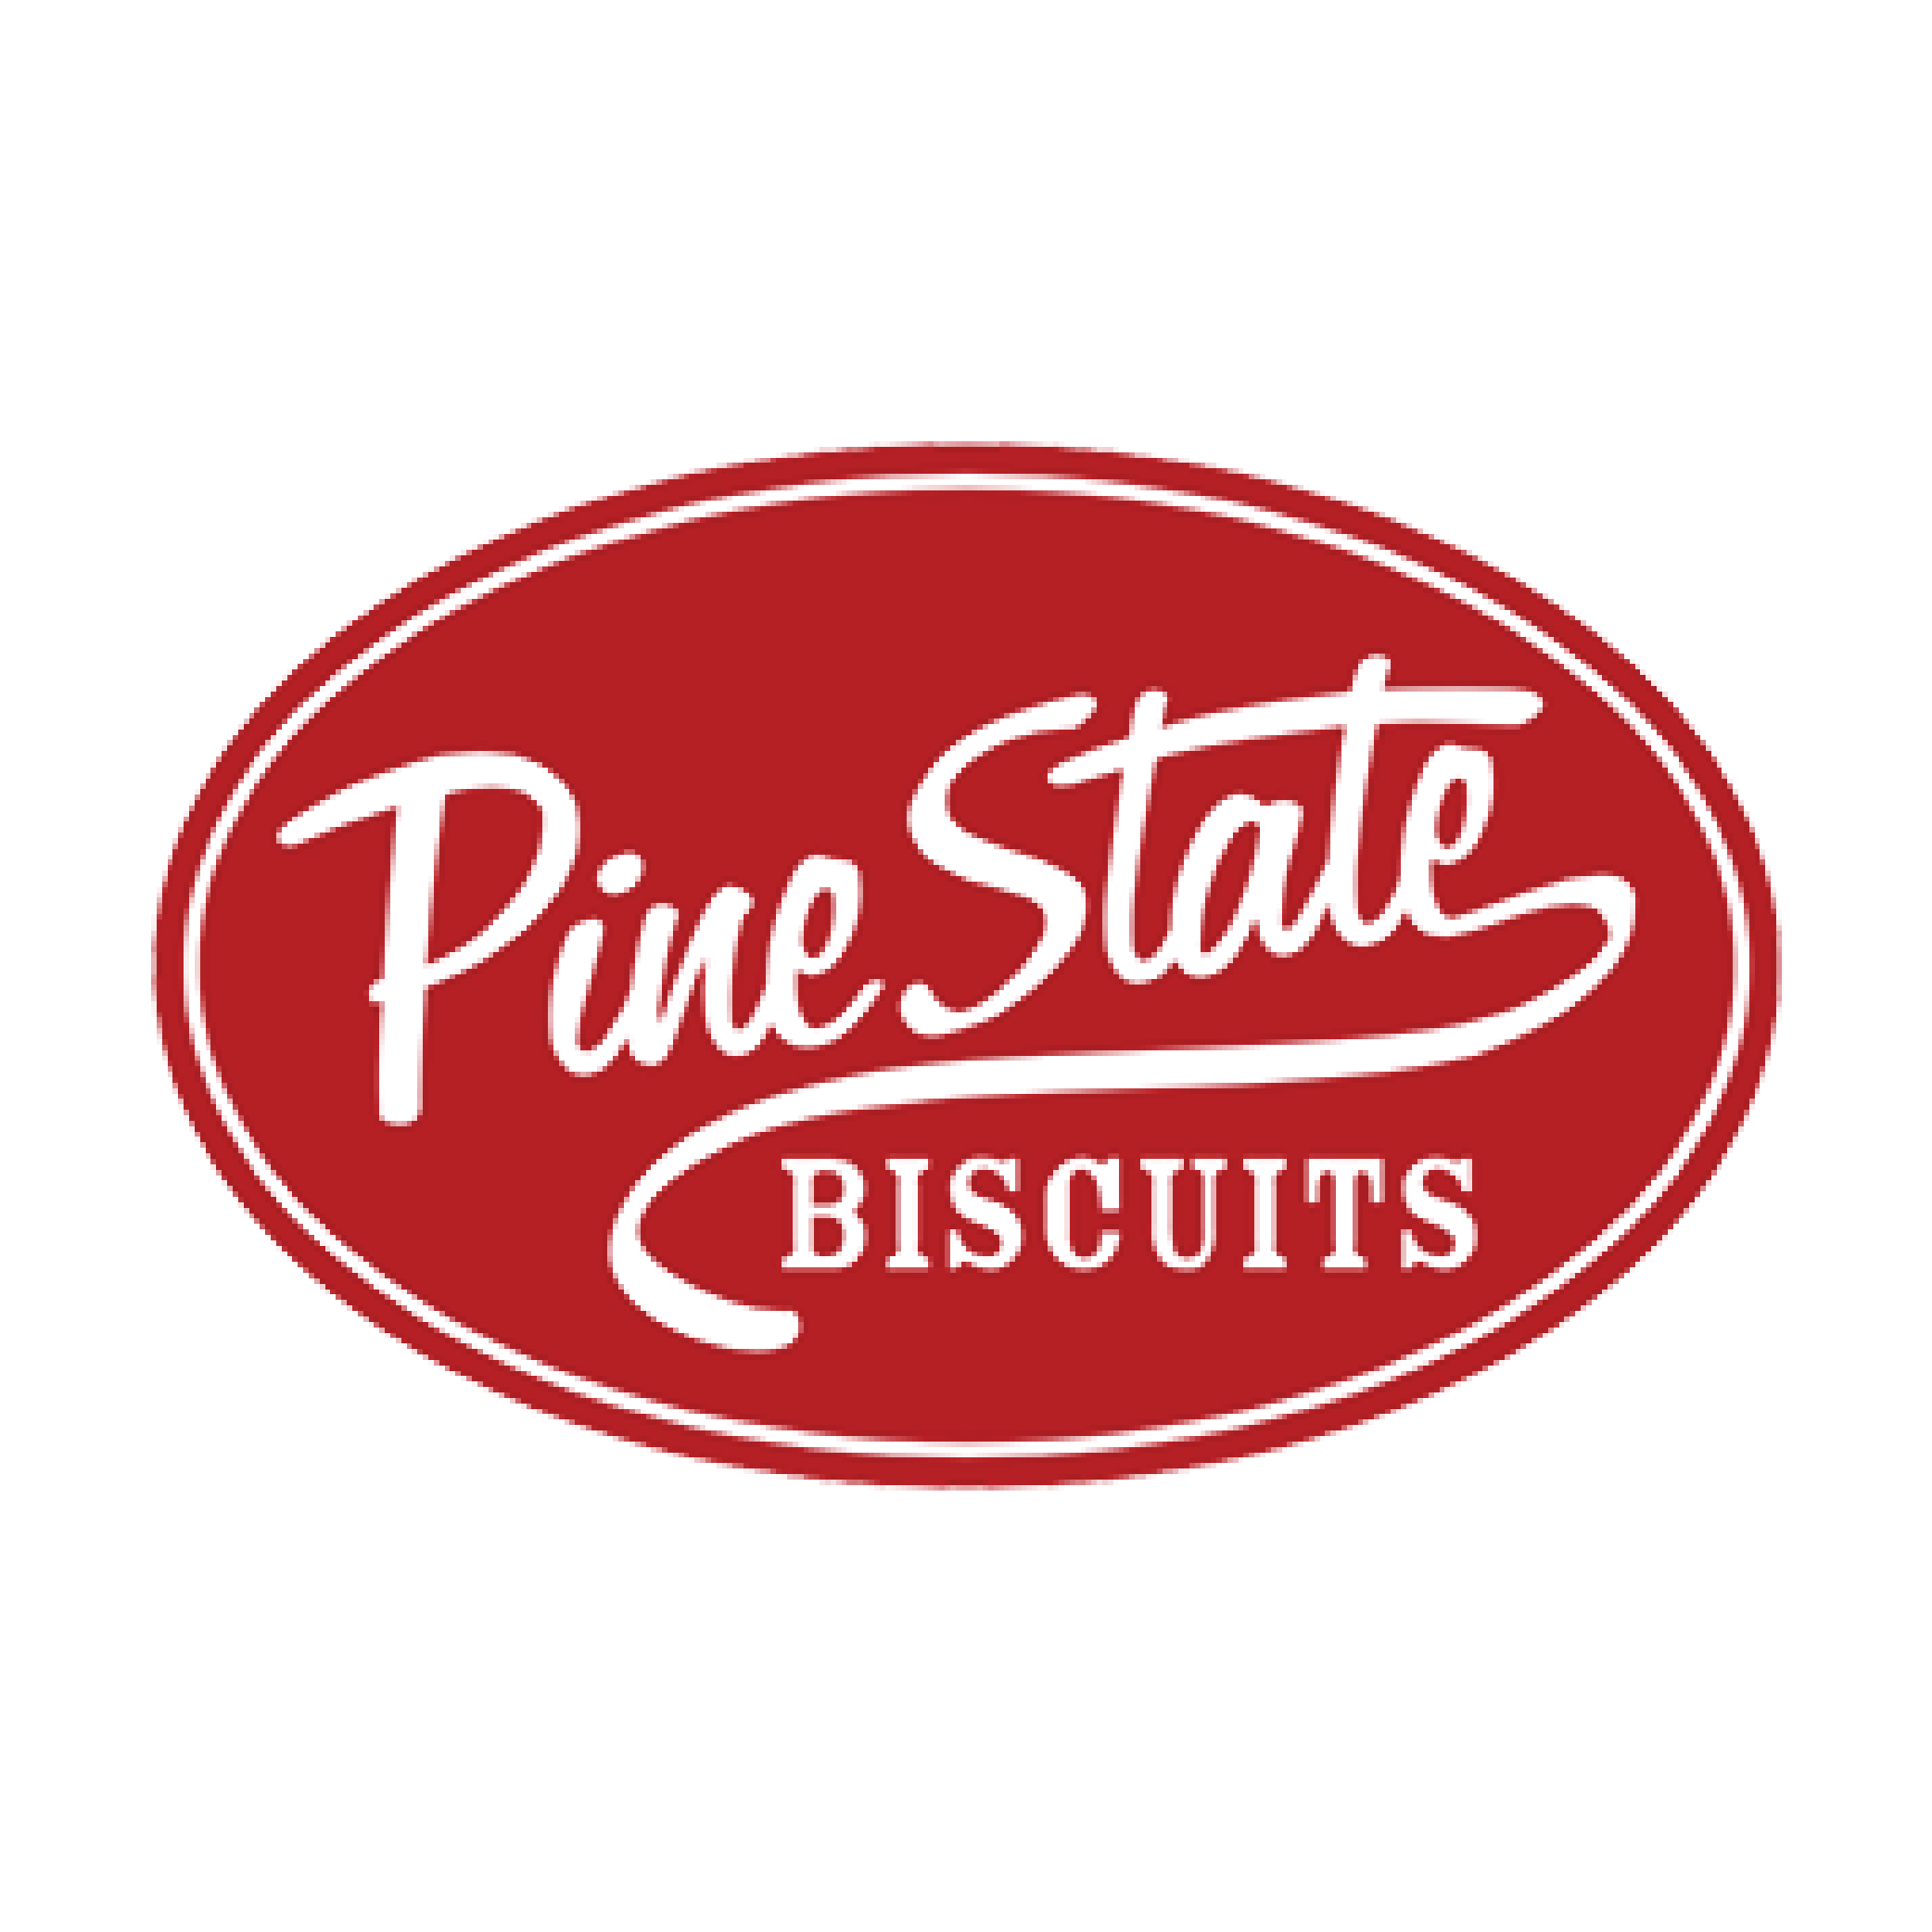 Pine-State-Biscuits-Bacon-Eggs-And-Kegs